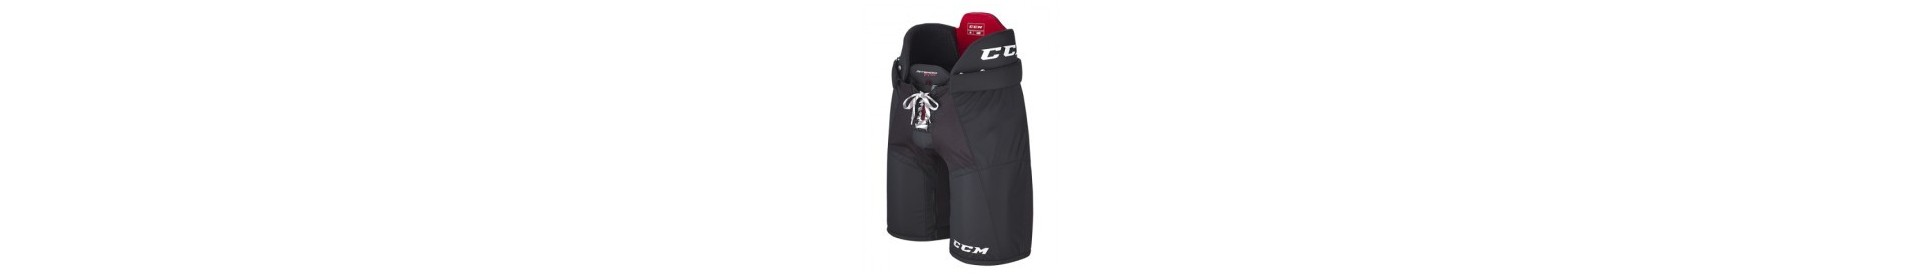 Protections Hockey - Le Vestiaire